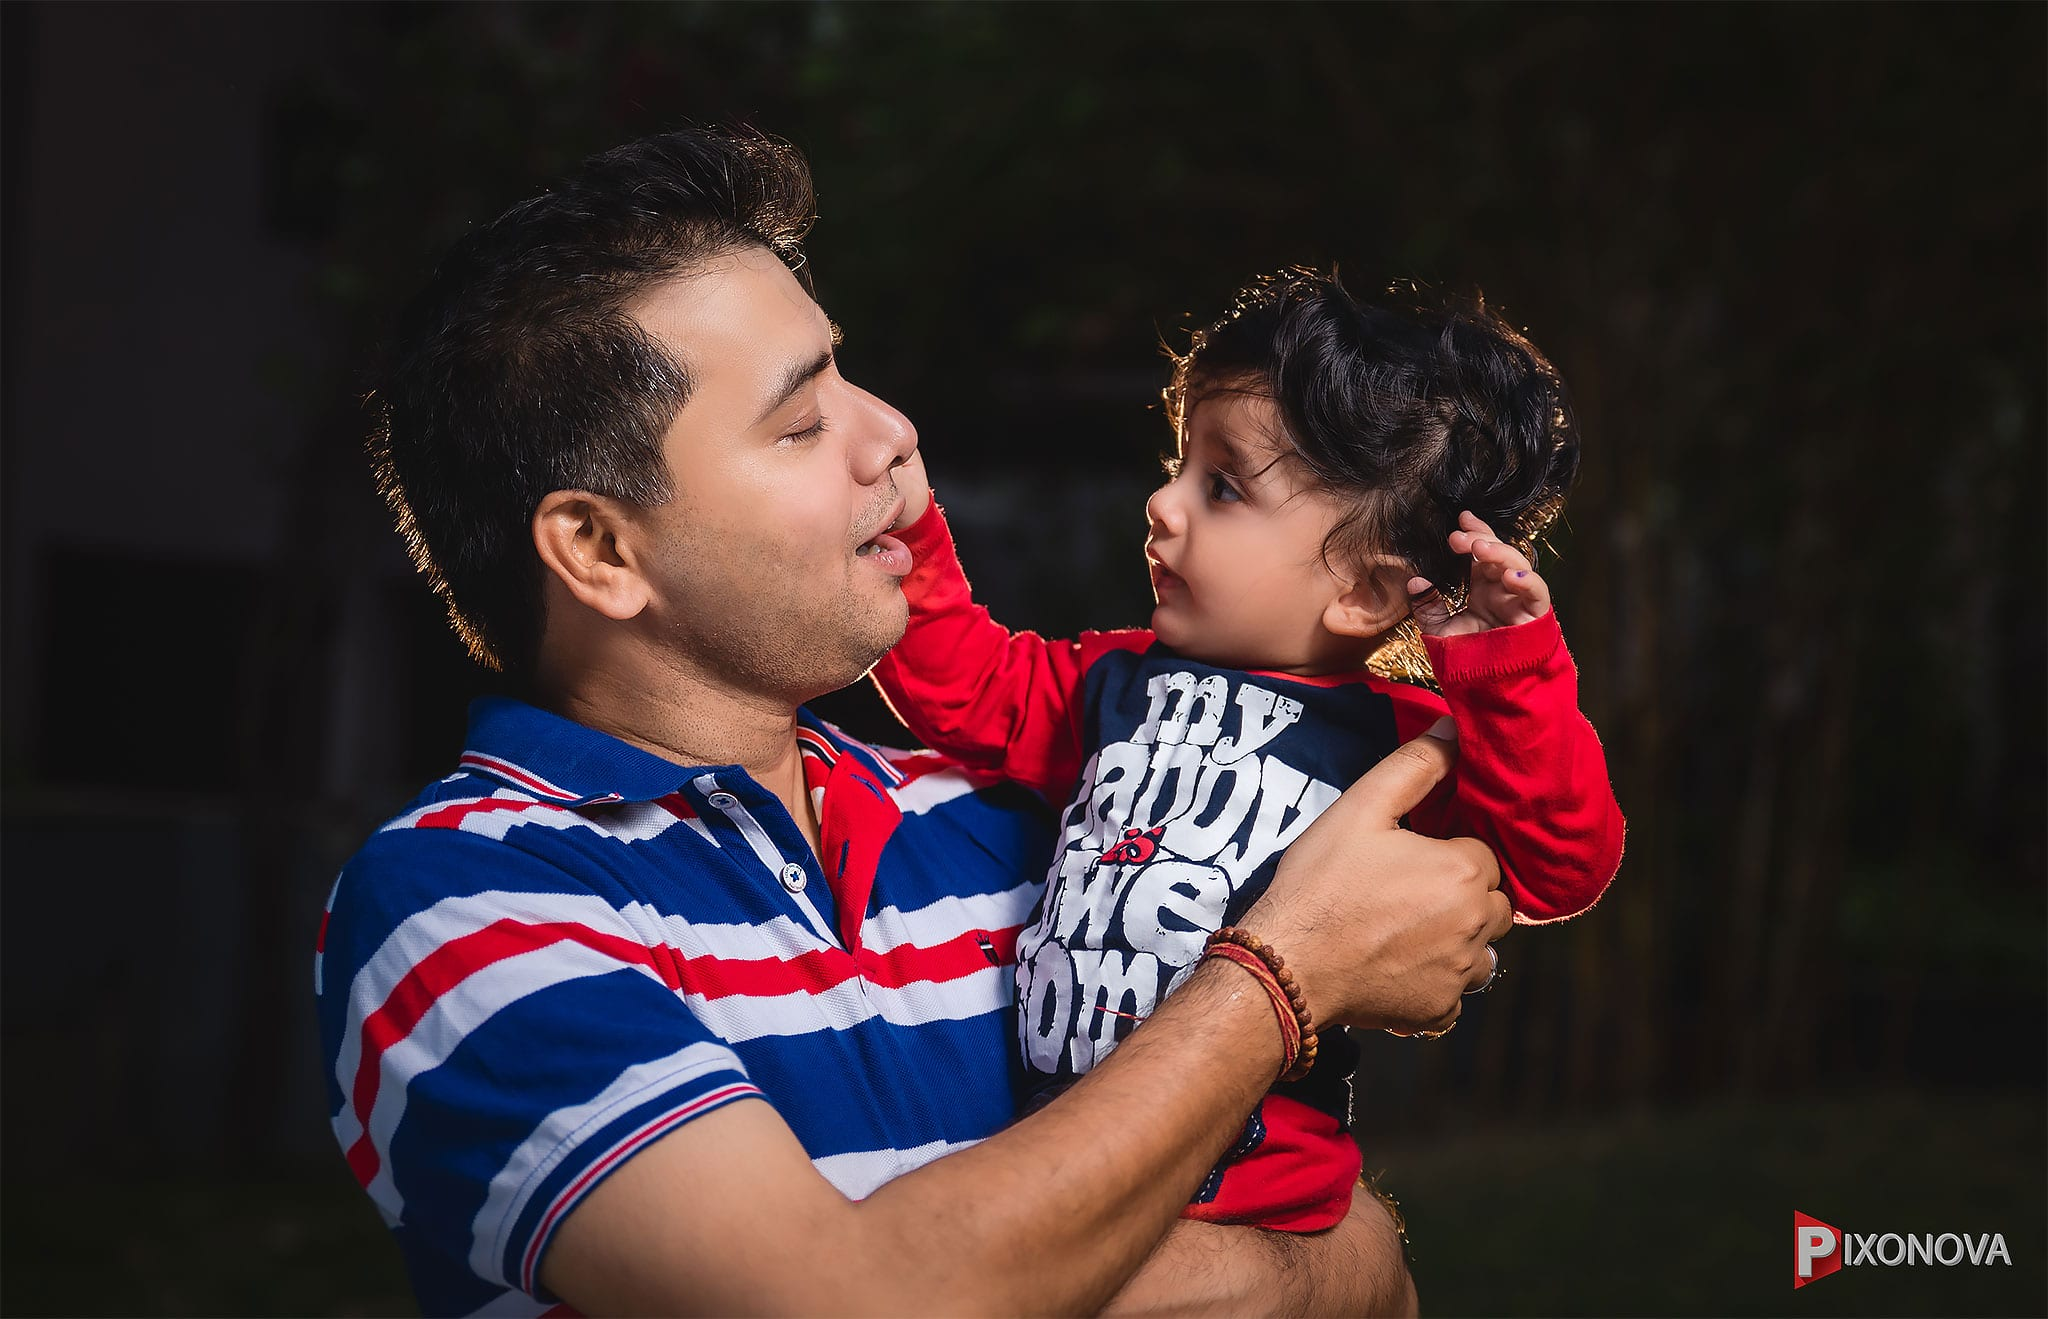 Rintin with his Dad , enjoying the moment